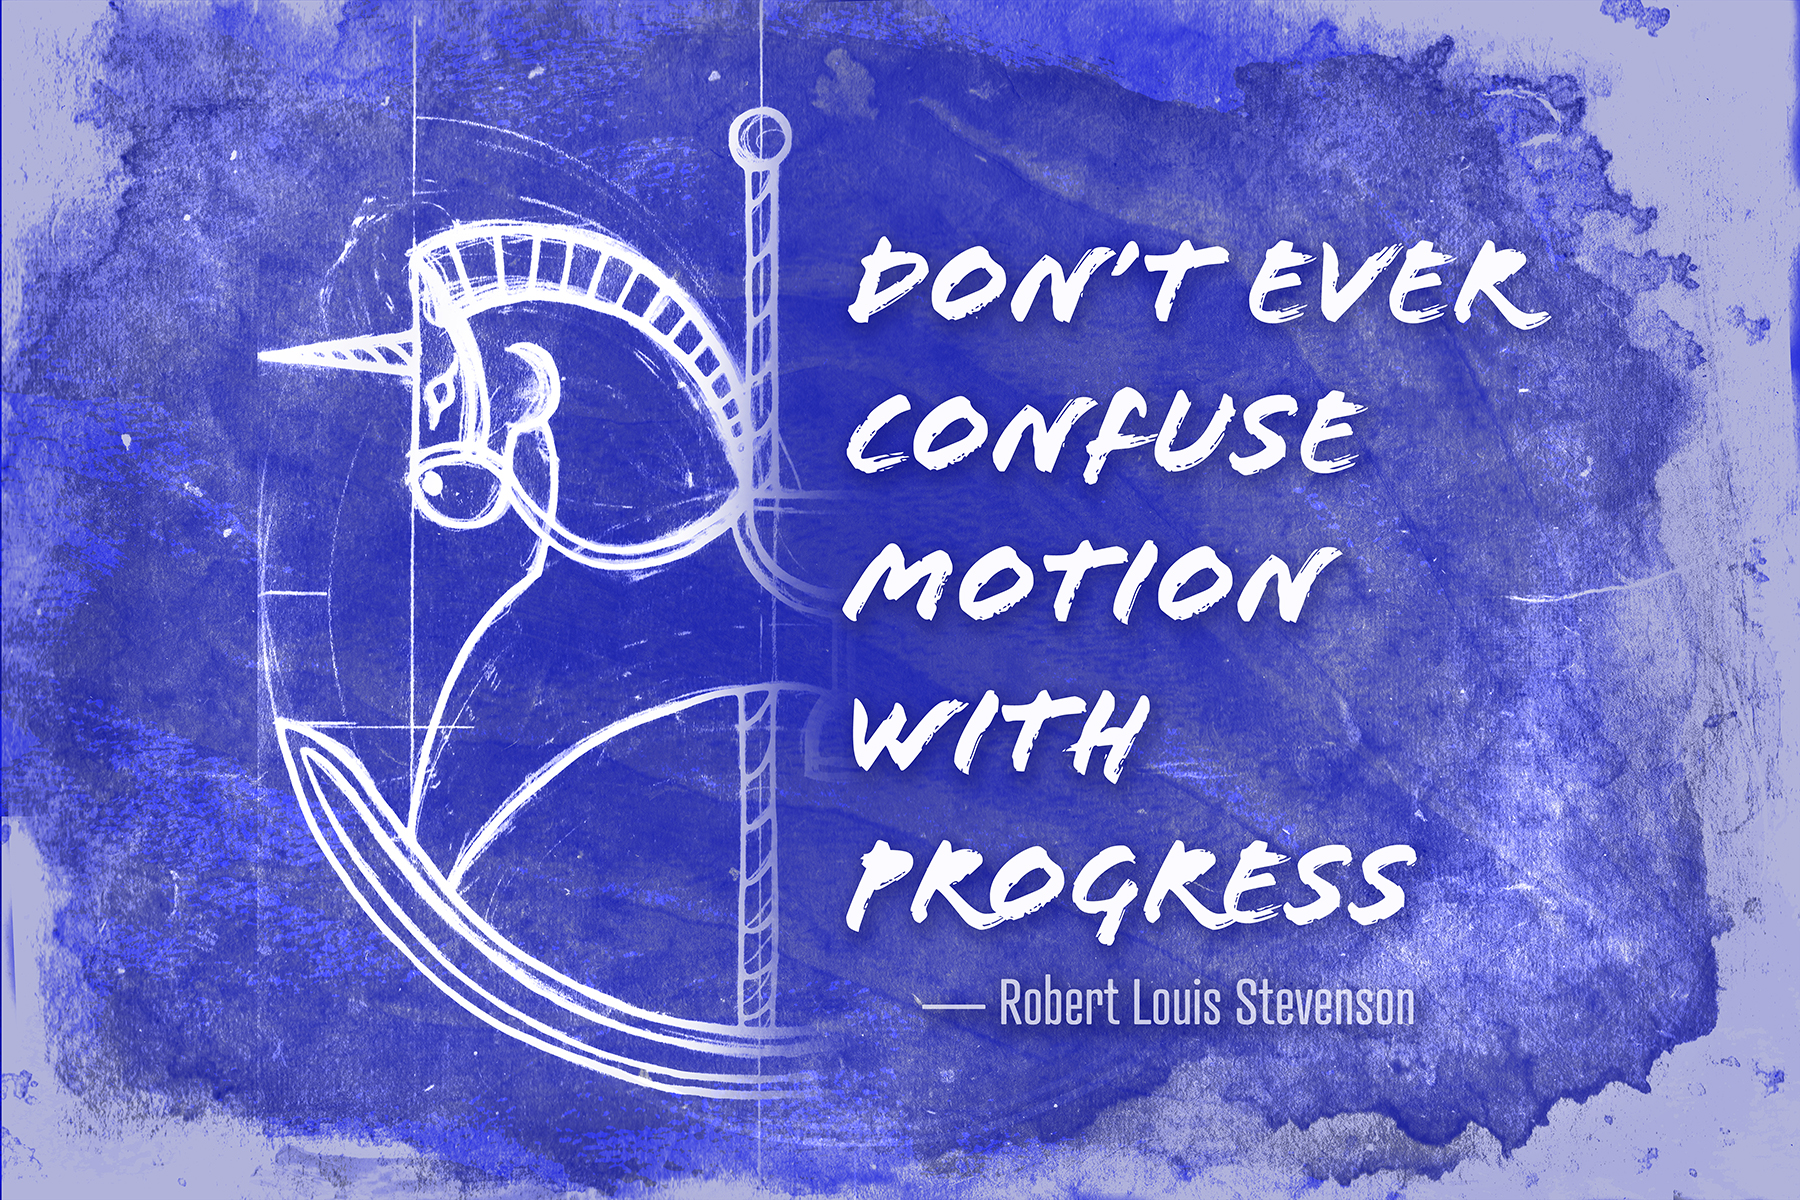 Motion vs Progress